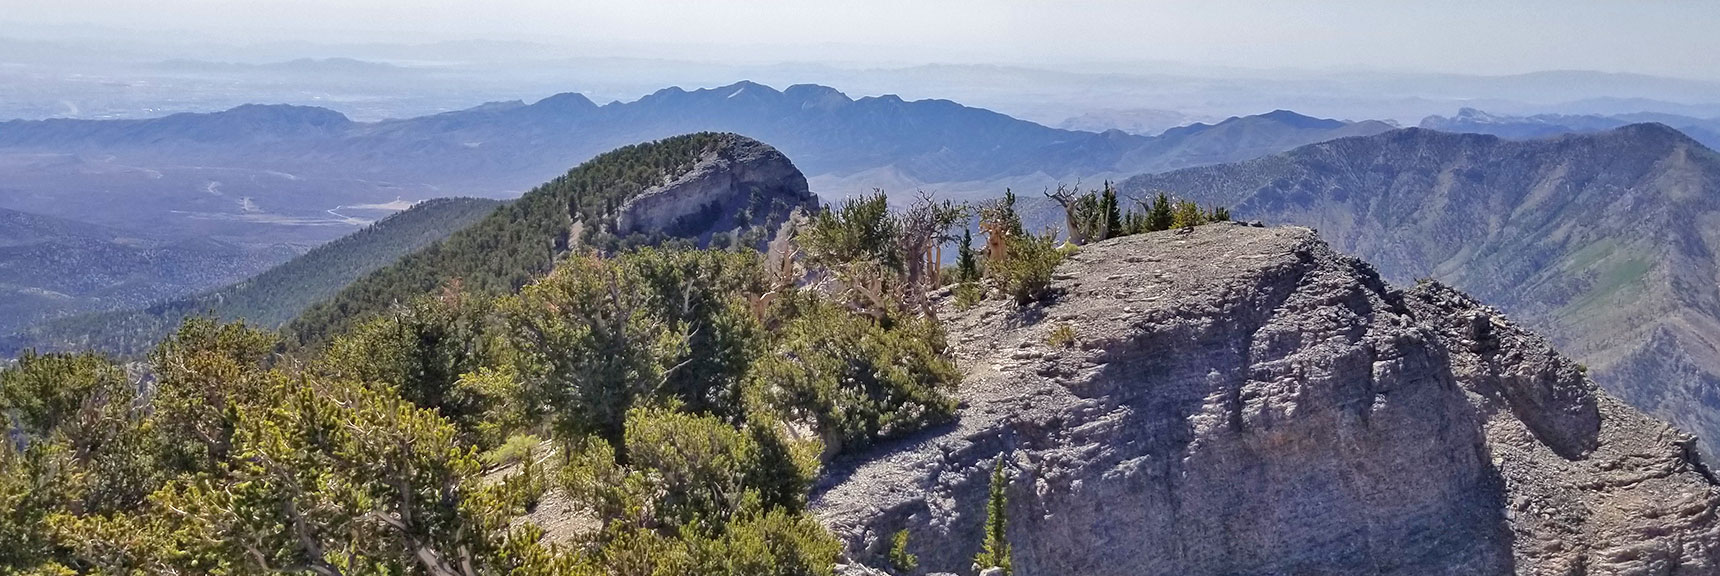 Mummy's Toes and La Madre Mountain from Mummy's Knees | Mummy Mountain's Knees | Mt. Charleston Wilderness, Nevada 024